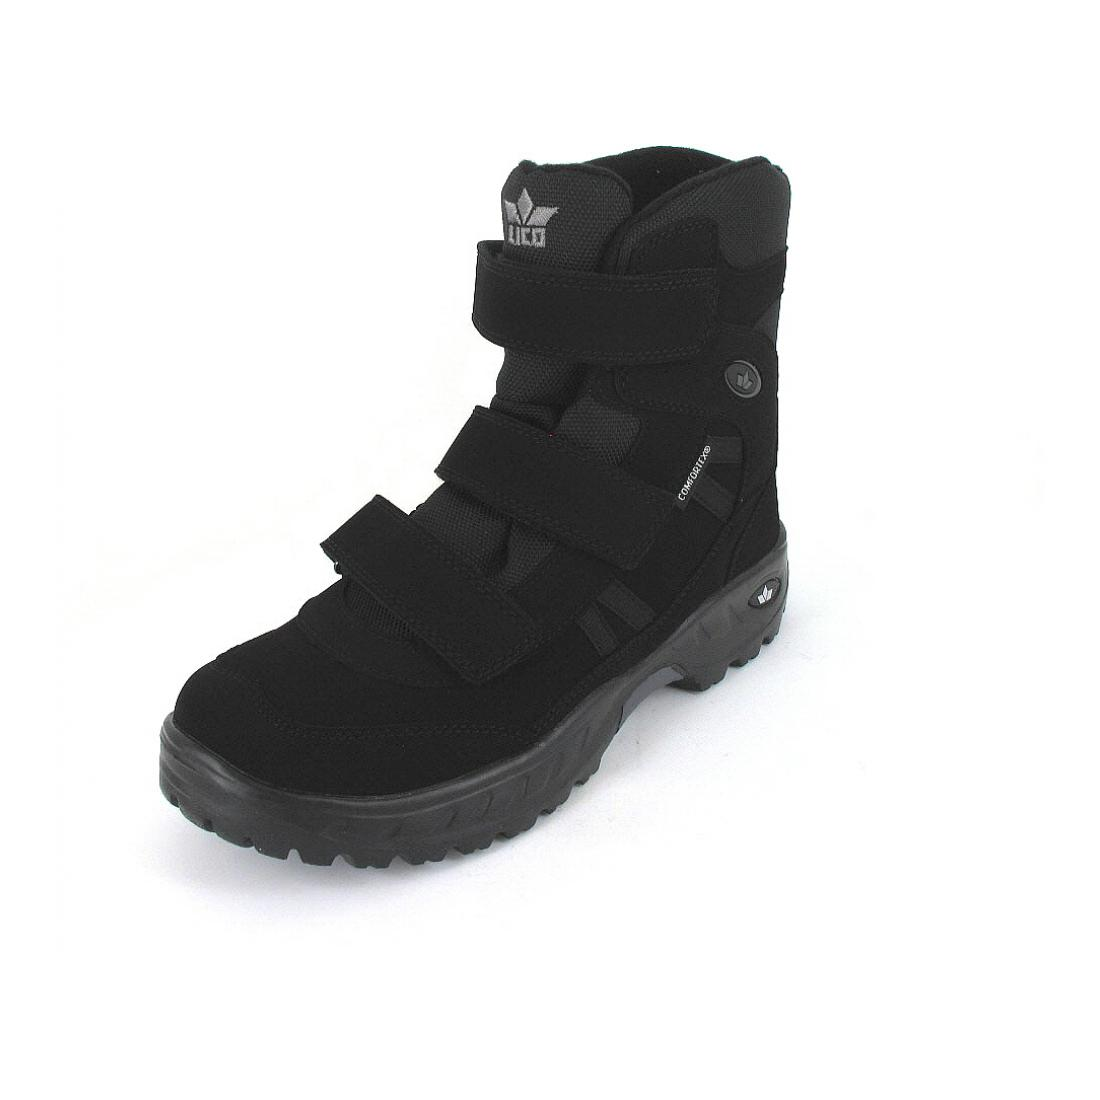 Geka Winterstiefel Wildlife